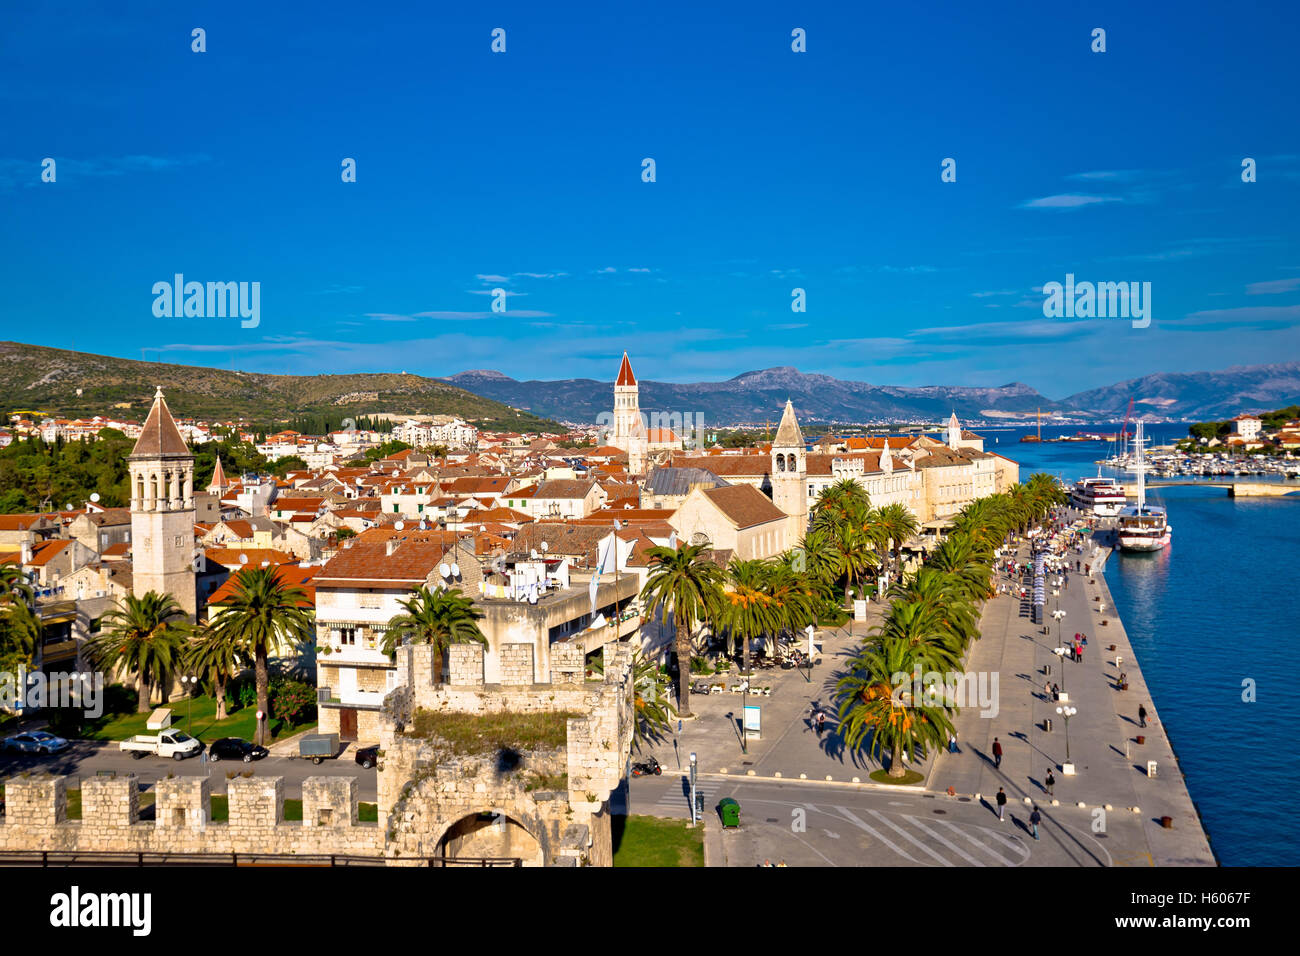 Town of Trogir rooftops and landmarks view, Dalmatia, Croatia - Stock Image